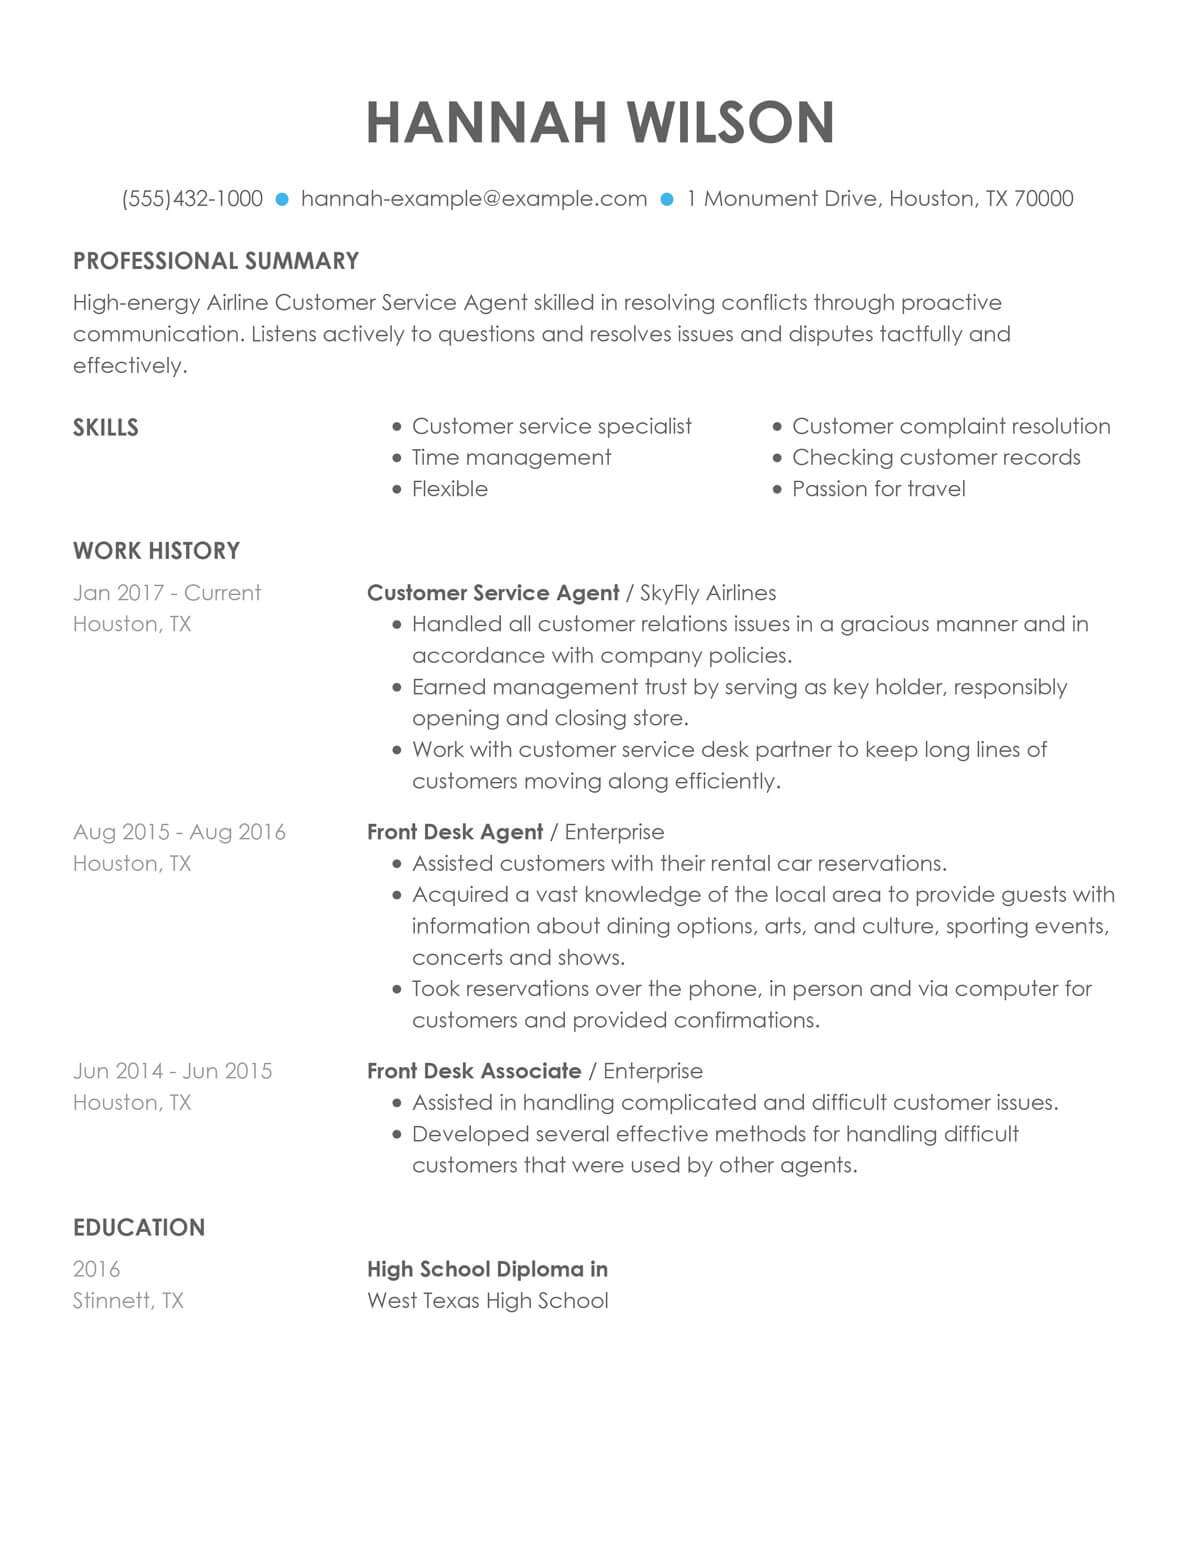 customize our customer representative resume example service accomplishments airline Resume Customer Service Resume Accomplishments